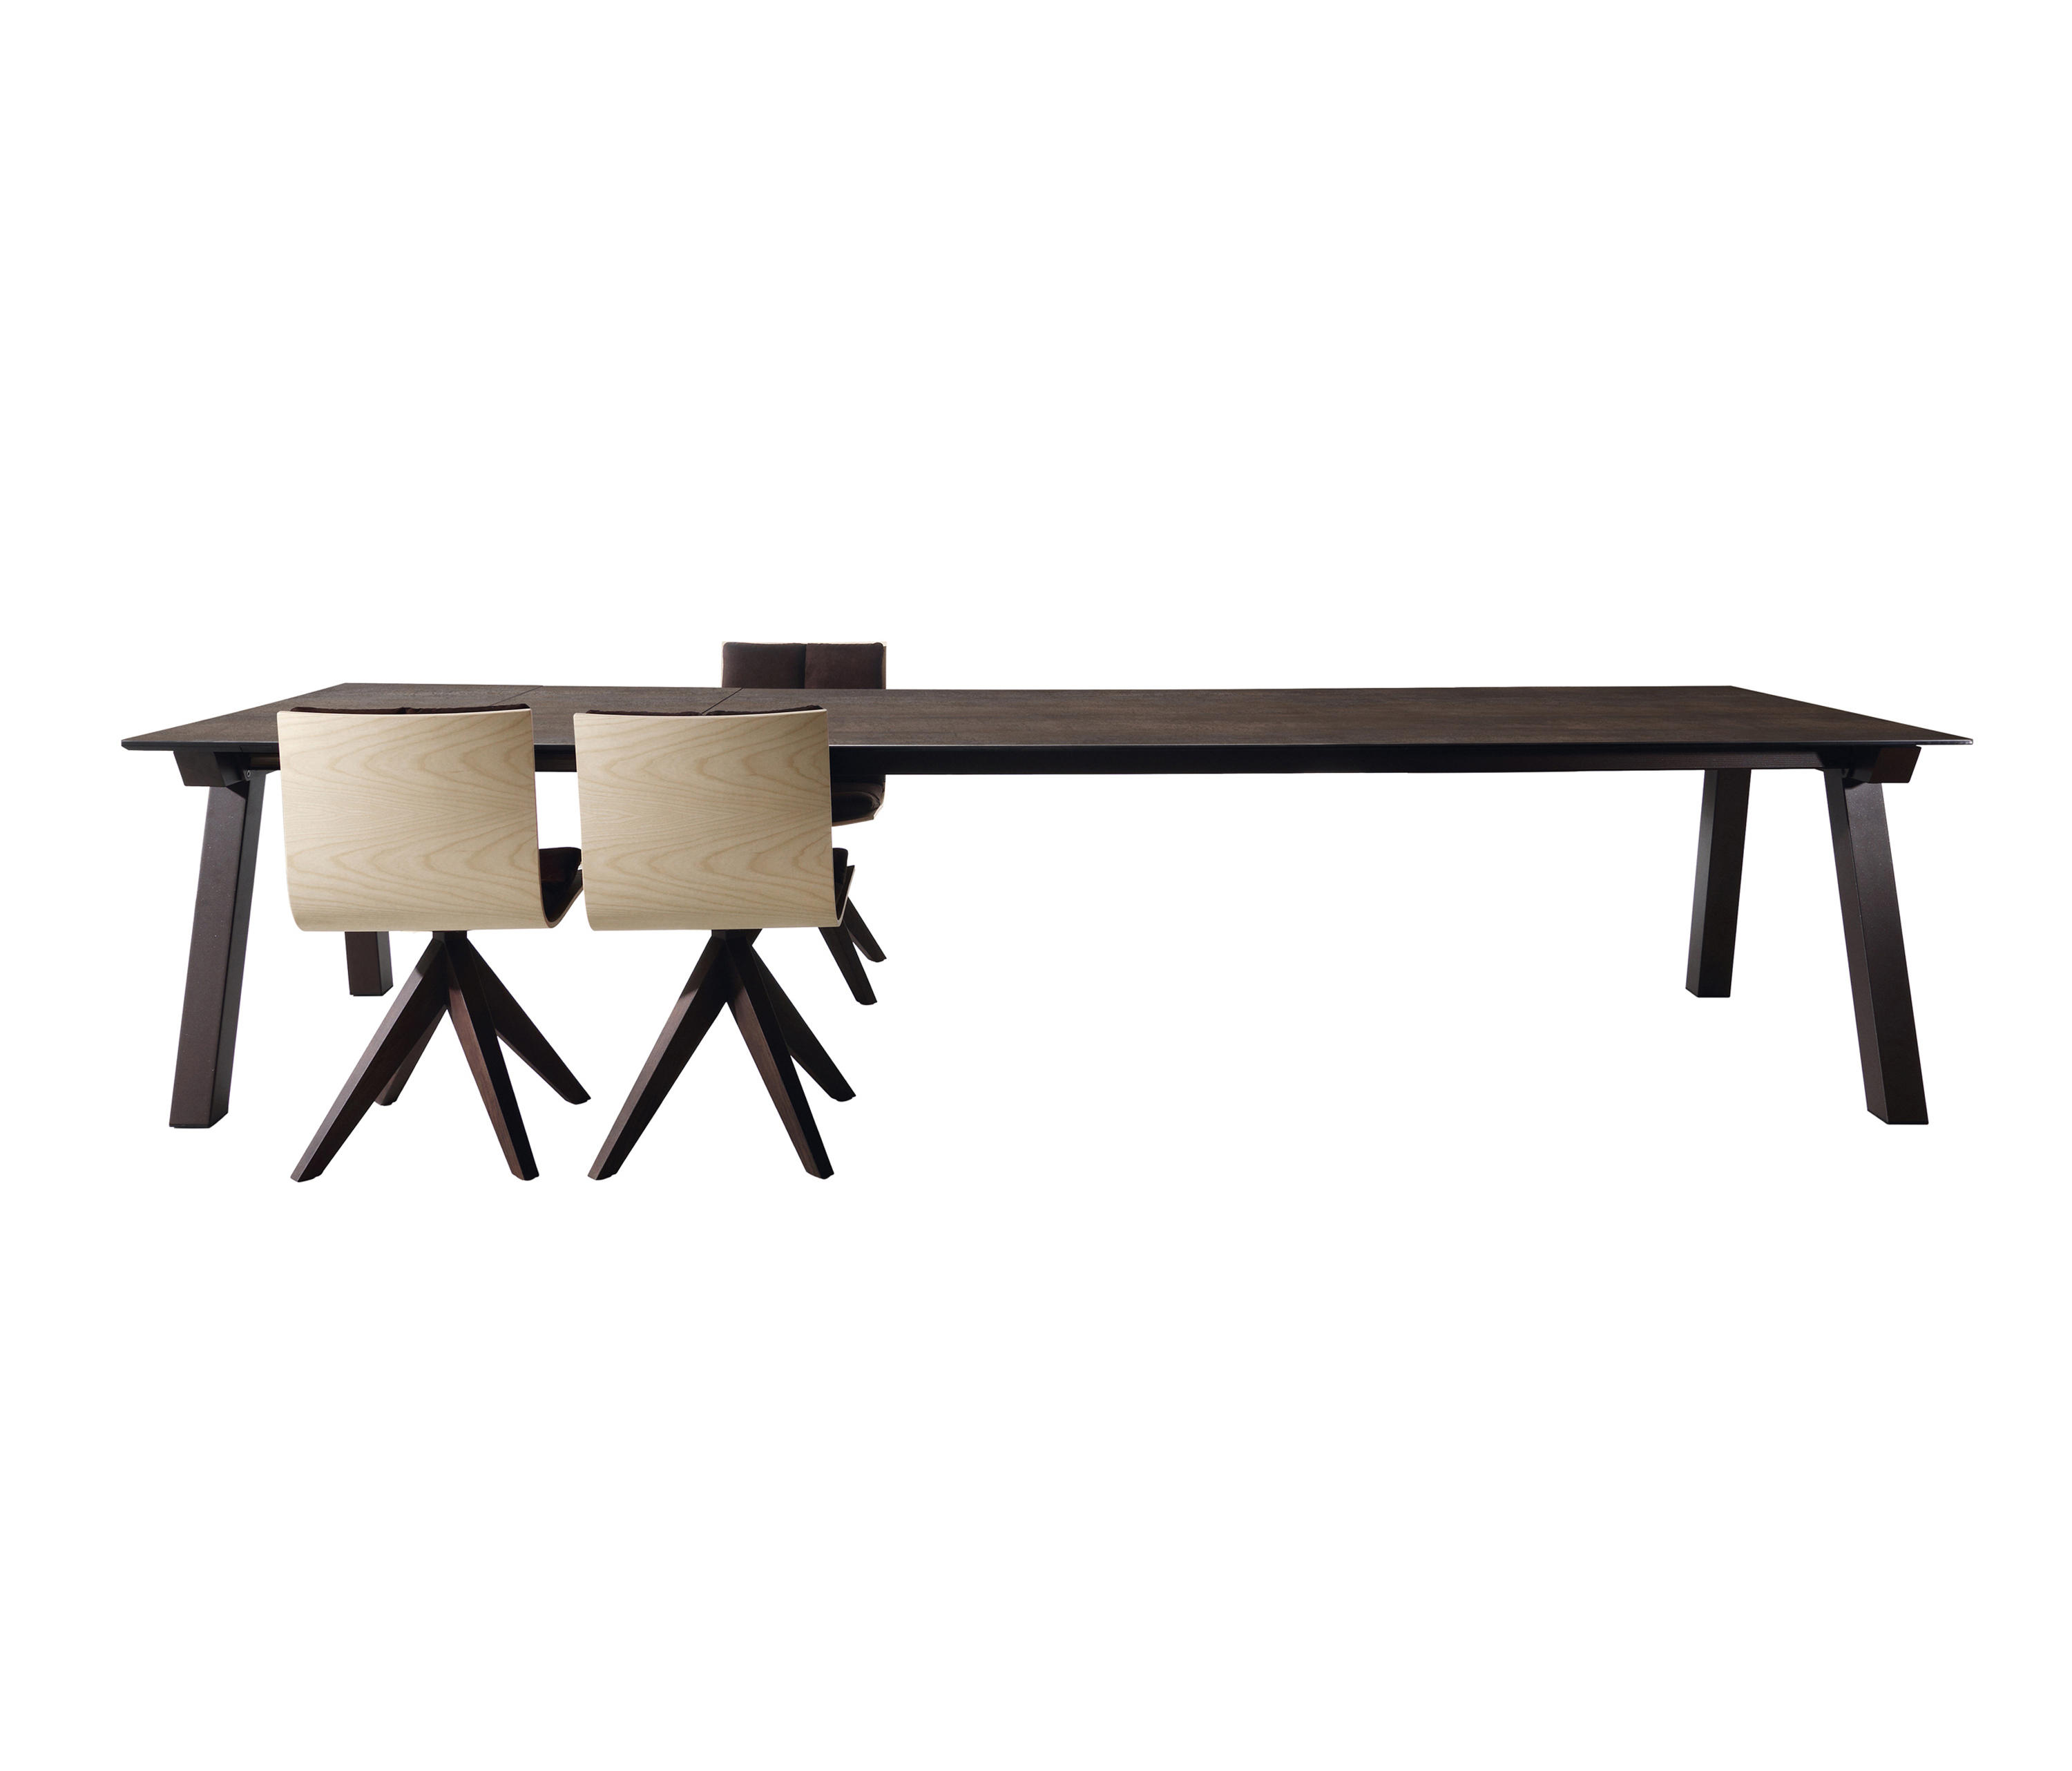 ... Duero Extending Table By Dressy | Dining Tables ...